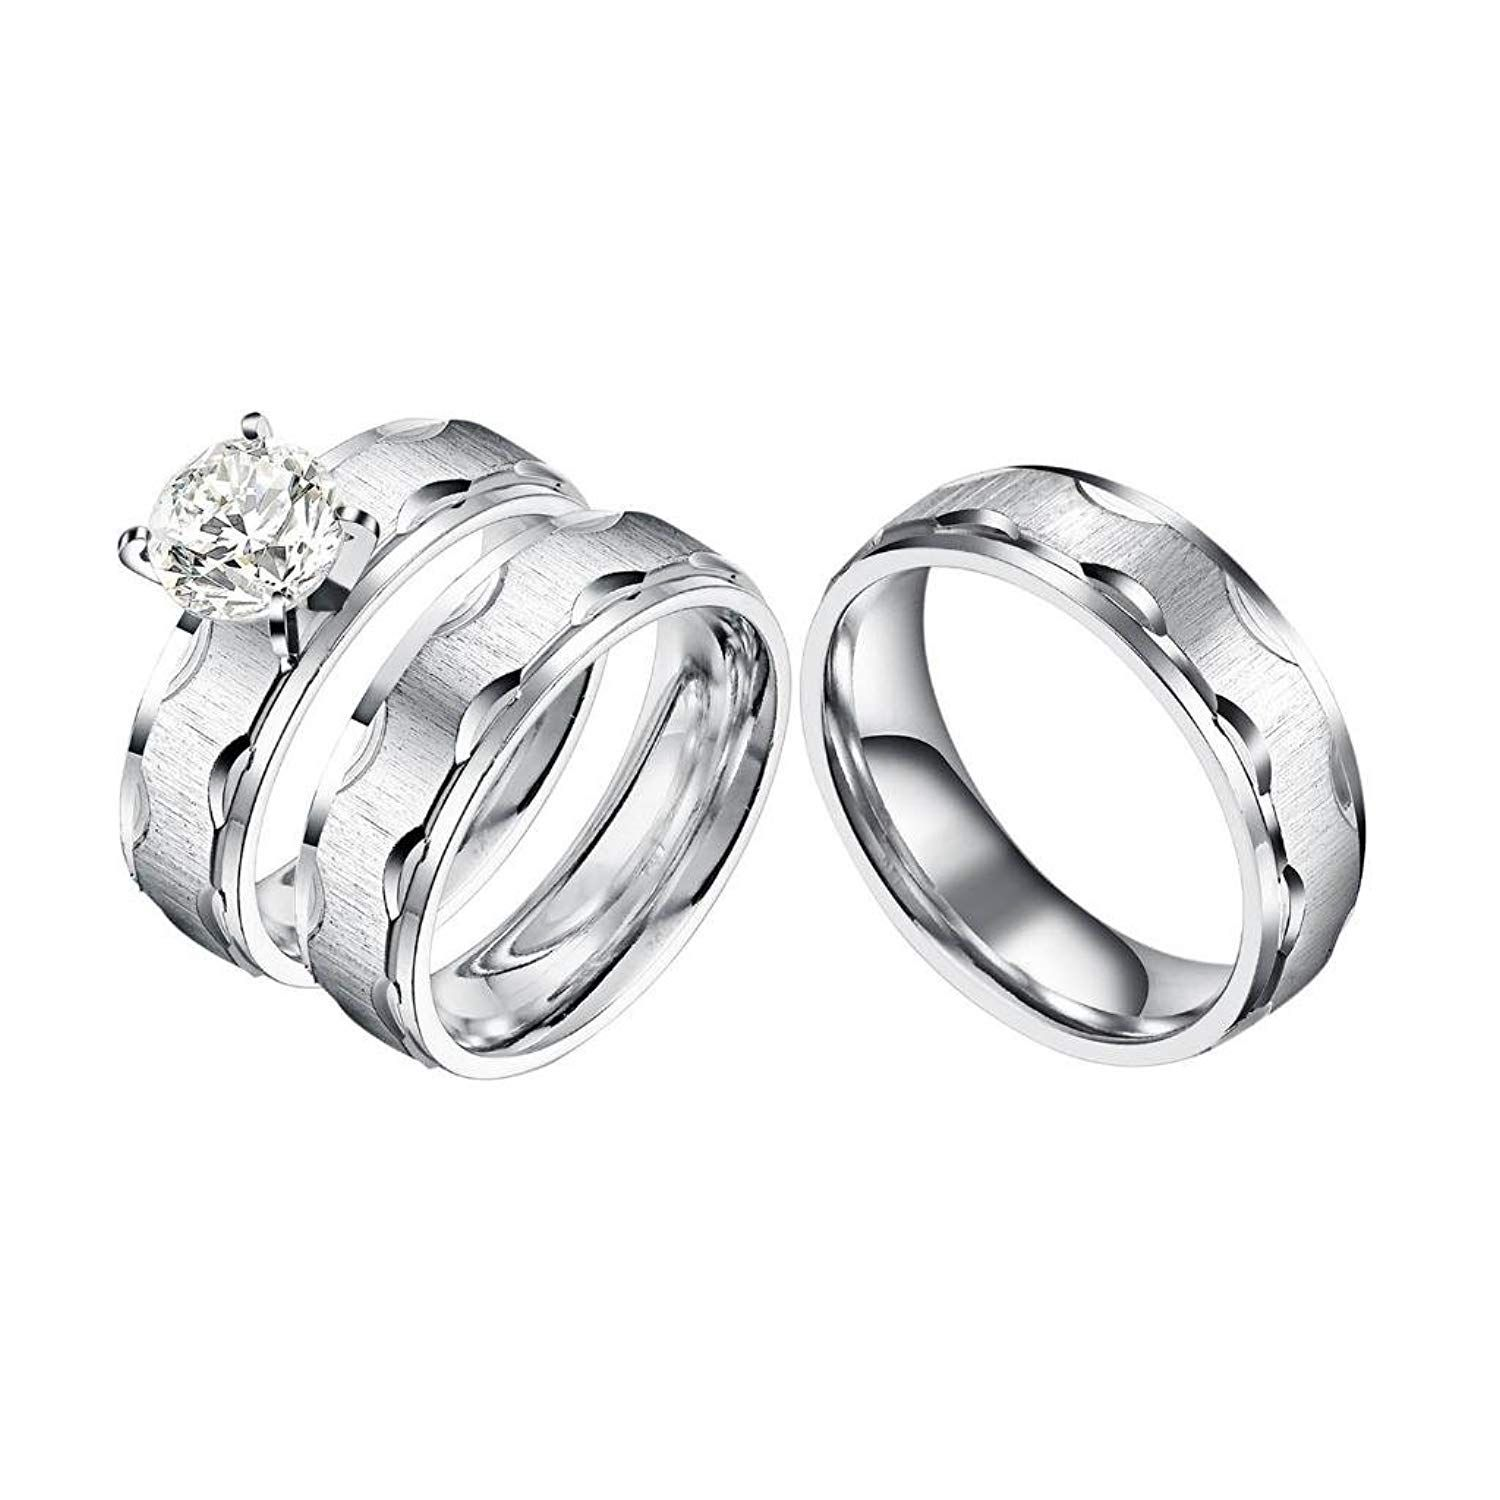 Castillna 3 Piece His And Hers Wedding Set Brushed Stainless